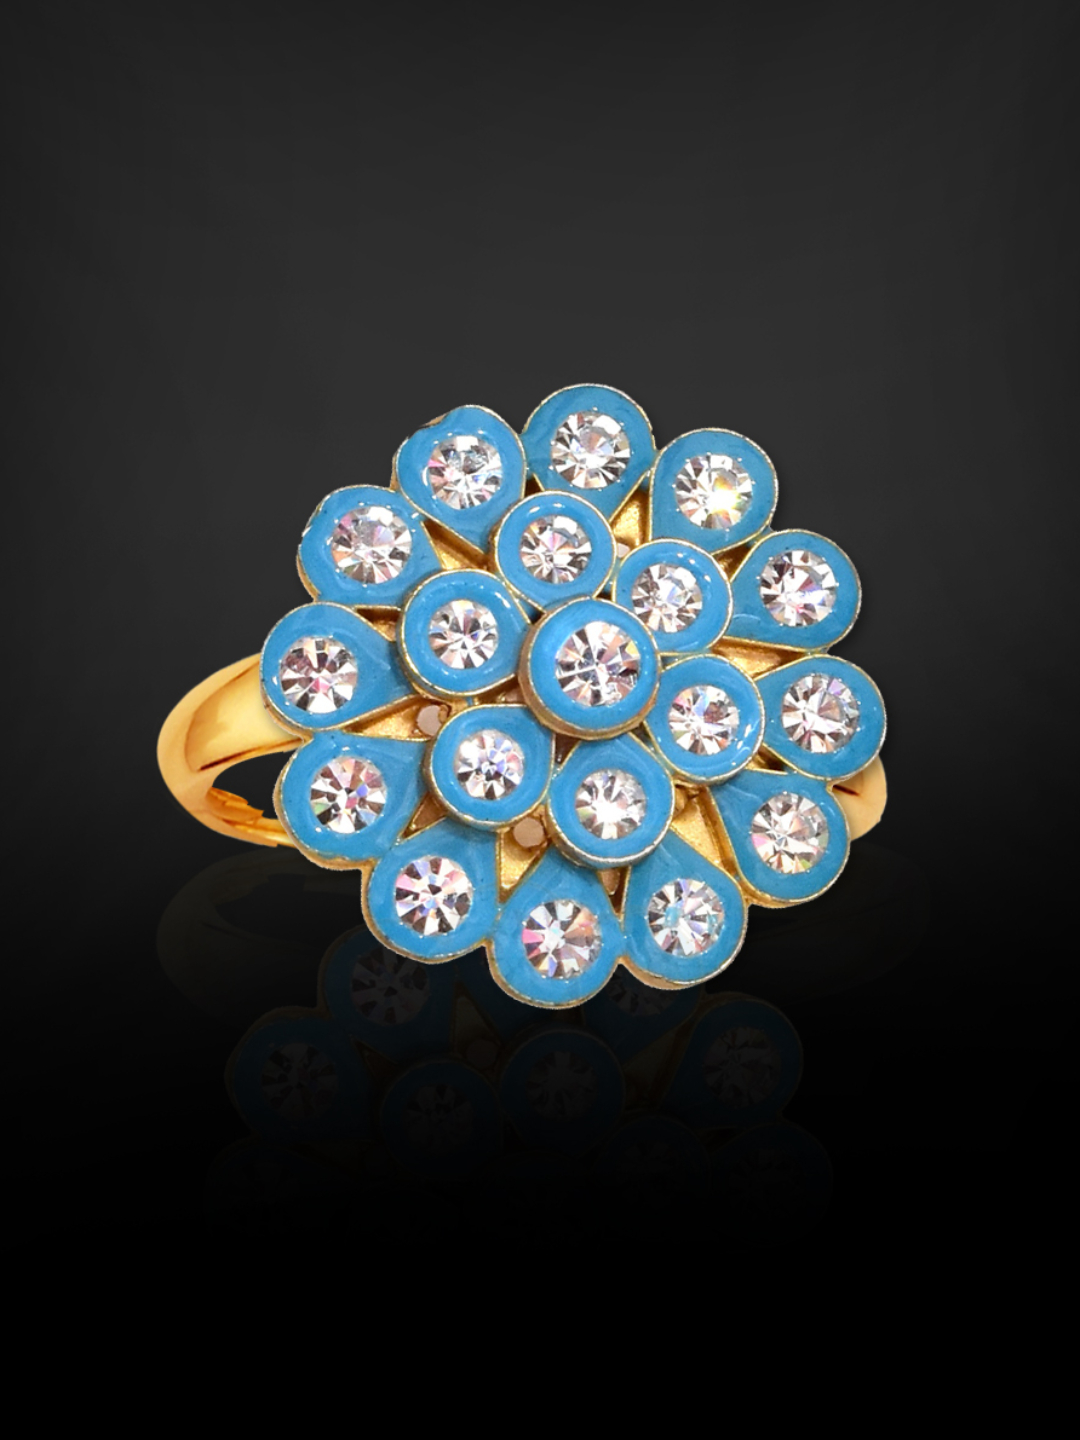 Awadhi Handmade High Quality Brass With Golden Polish Finger Rings In Sky Blue